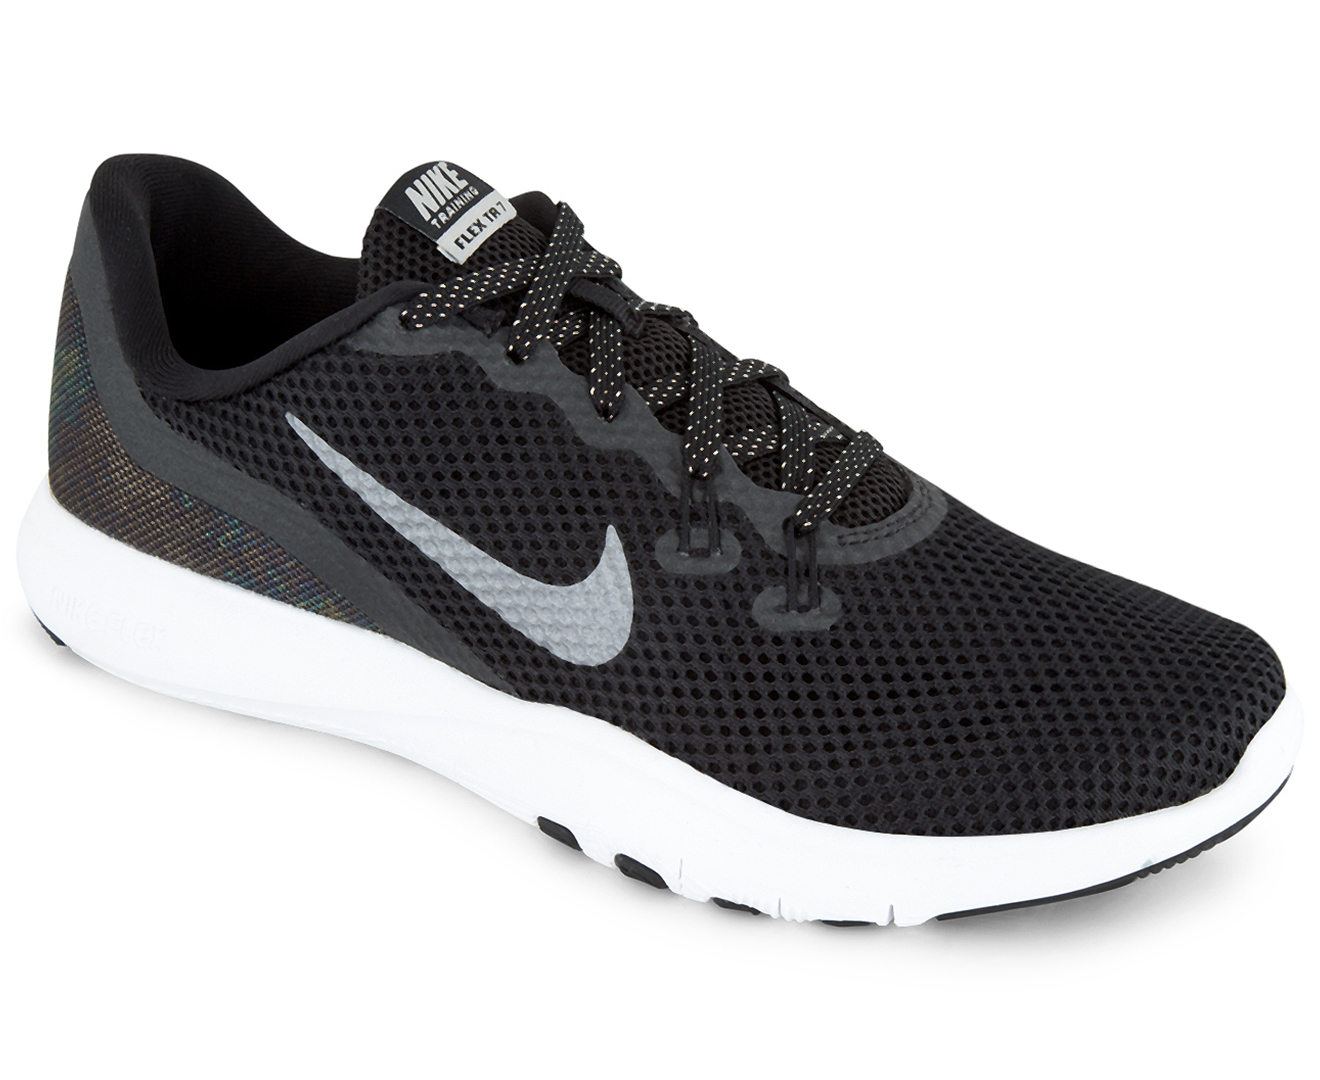 8262b5f4e339a Nike Women s Flex Trainer 7 MTLC Shoe - Black Metallic Dark Grey ...